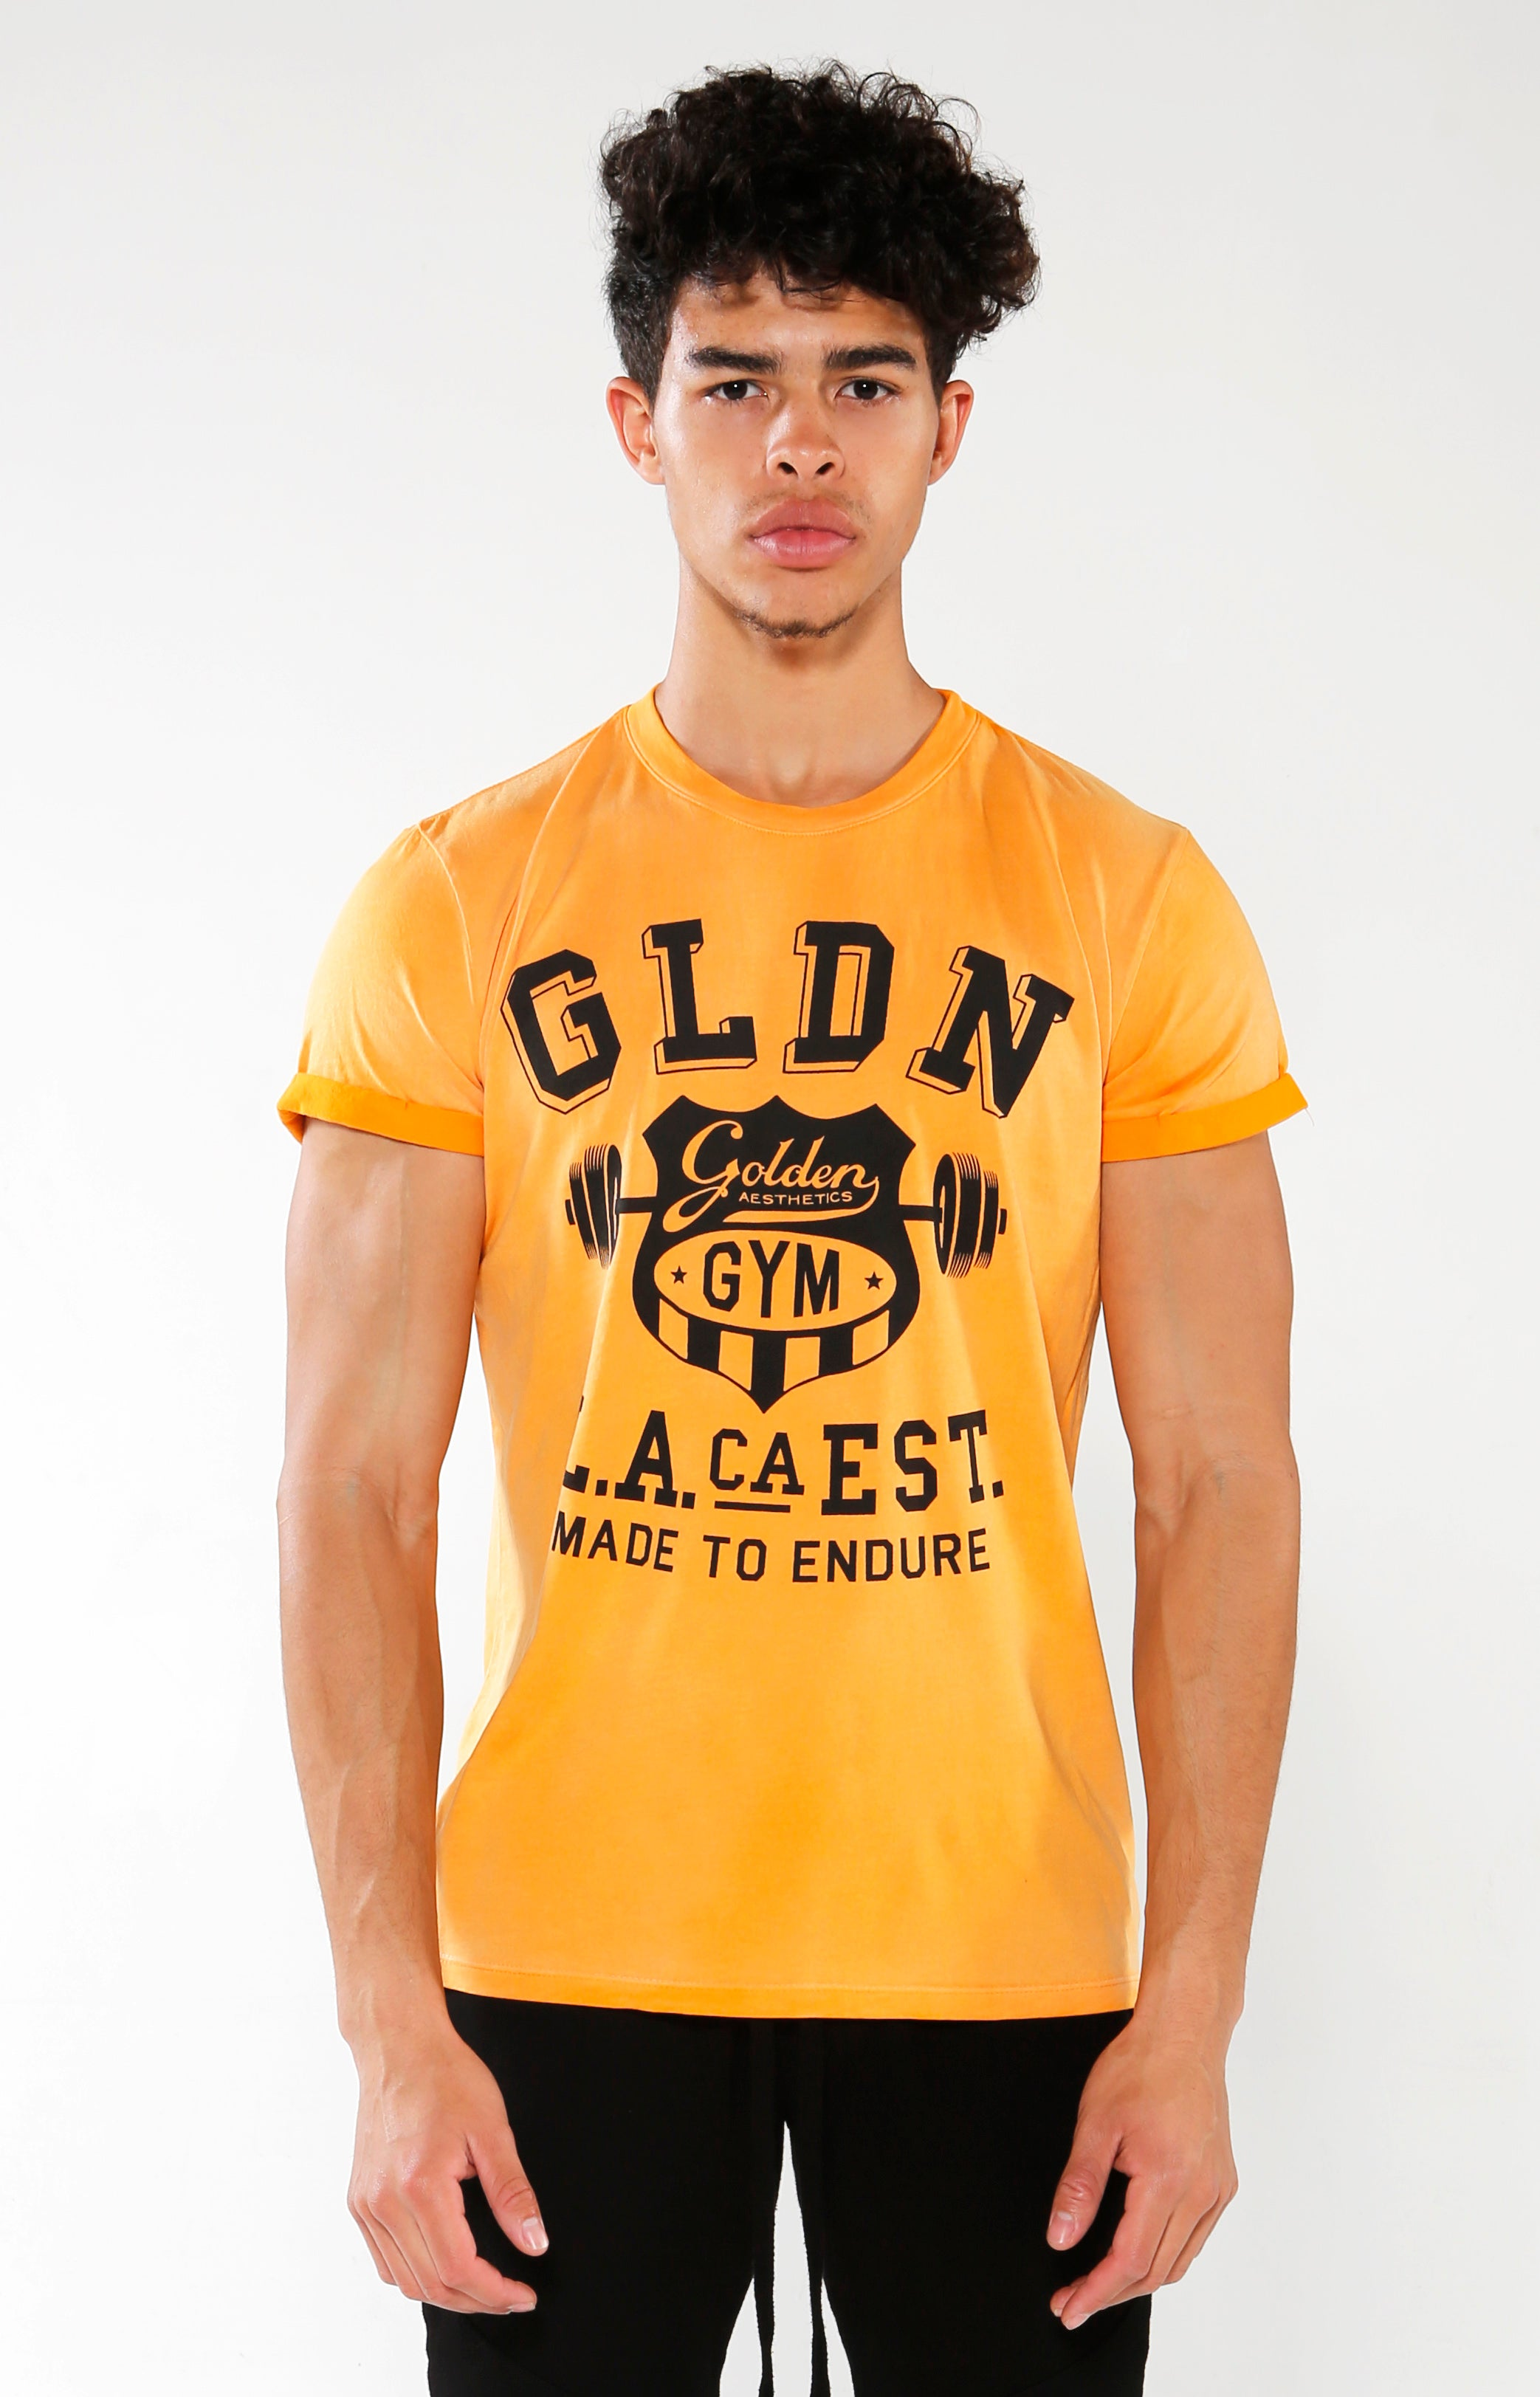 Men's Yellow Gym Crest T-Shirt | Golden Aesthetics - Golden Aesthetics